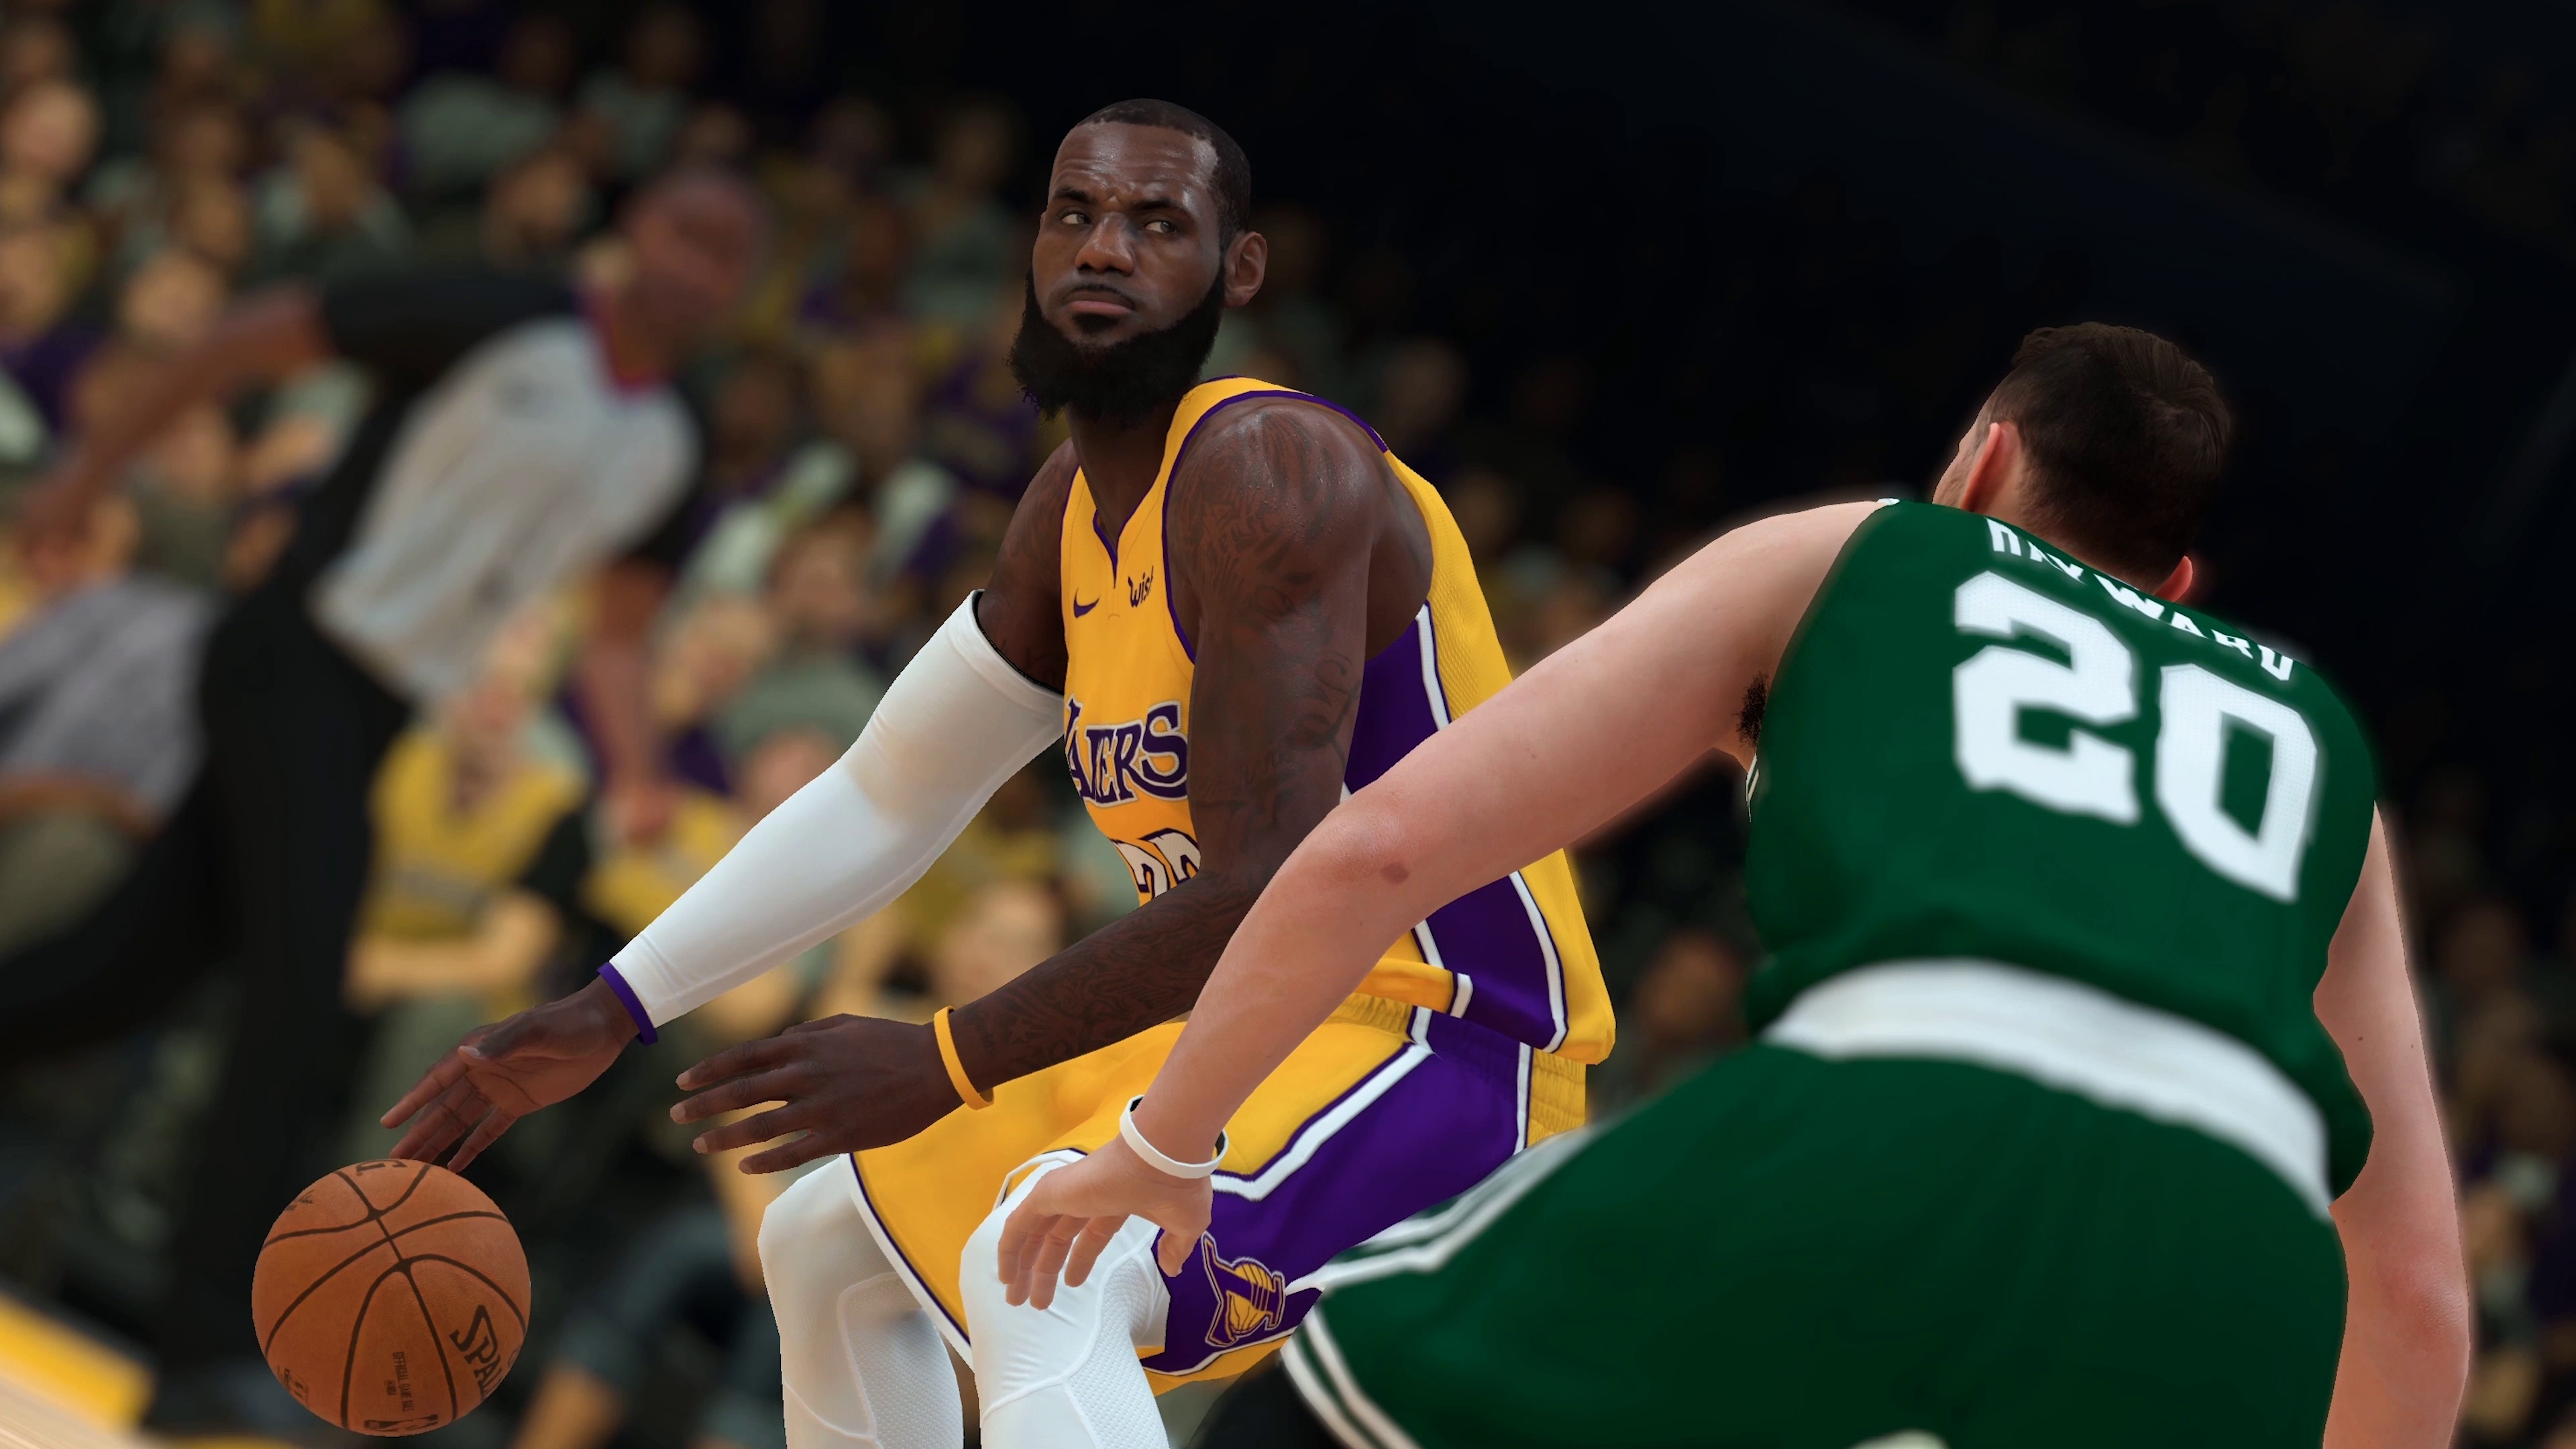 NBA 2K19 review: A thoughtful Way Back story helps the series